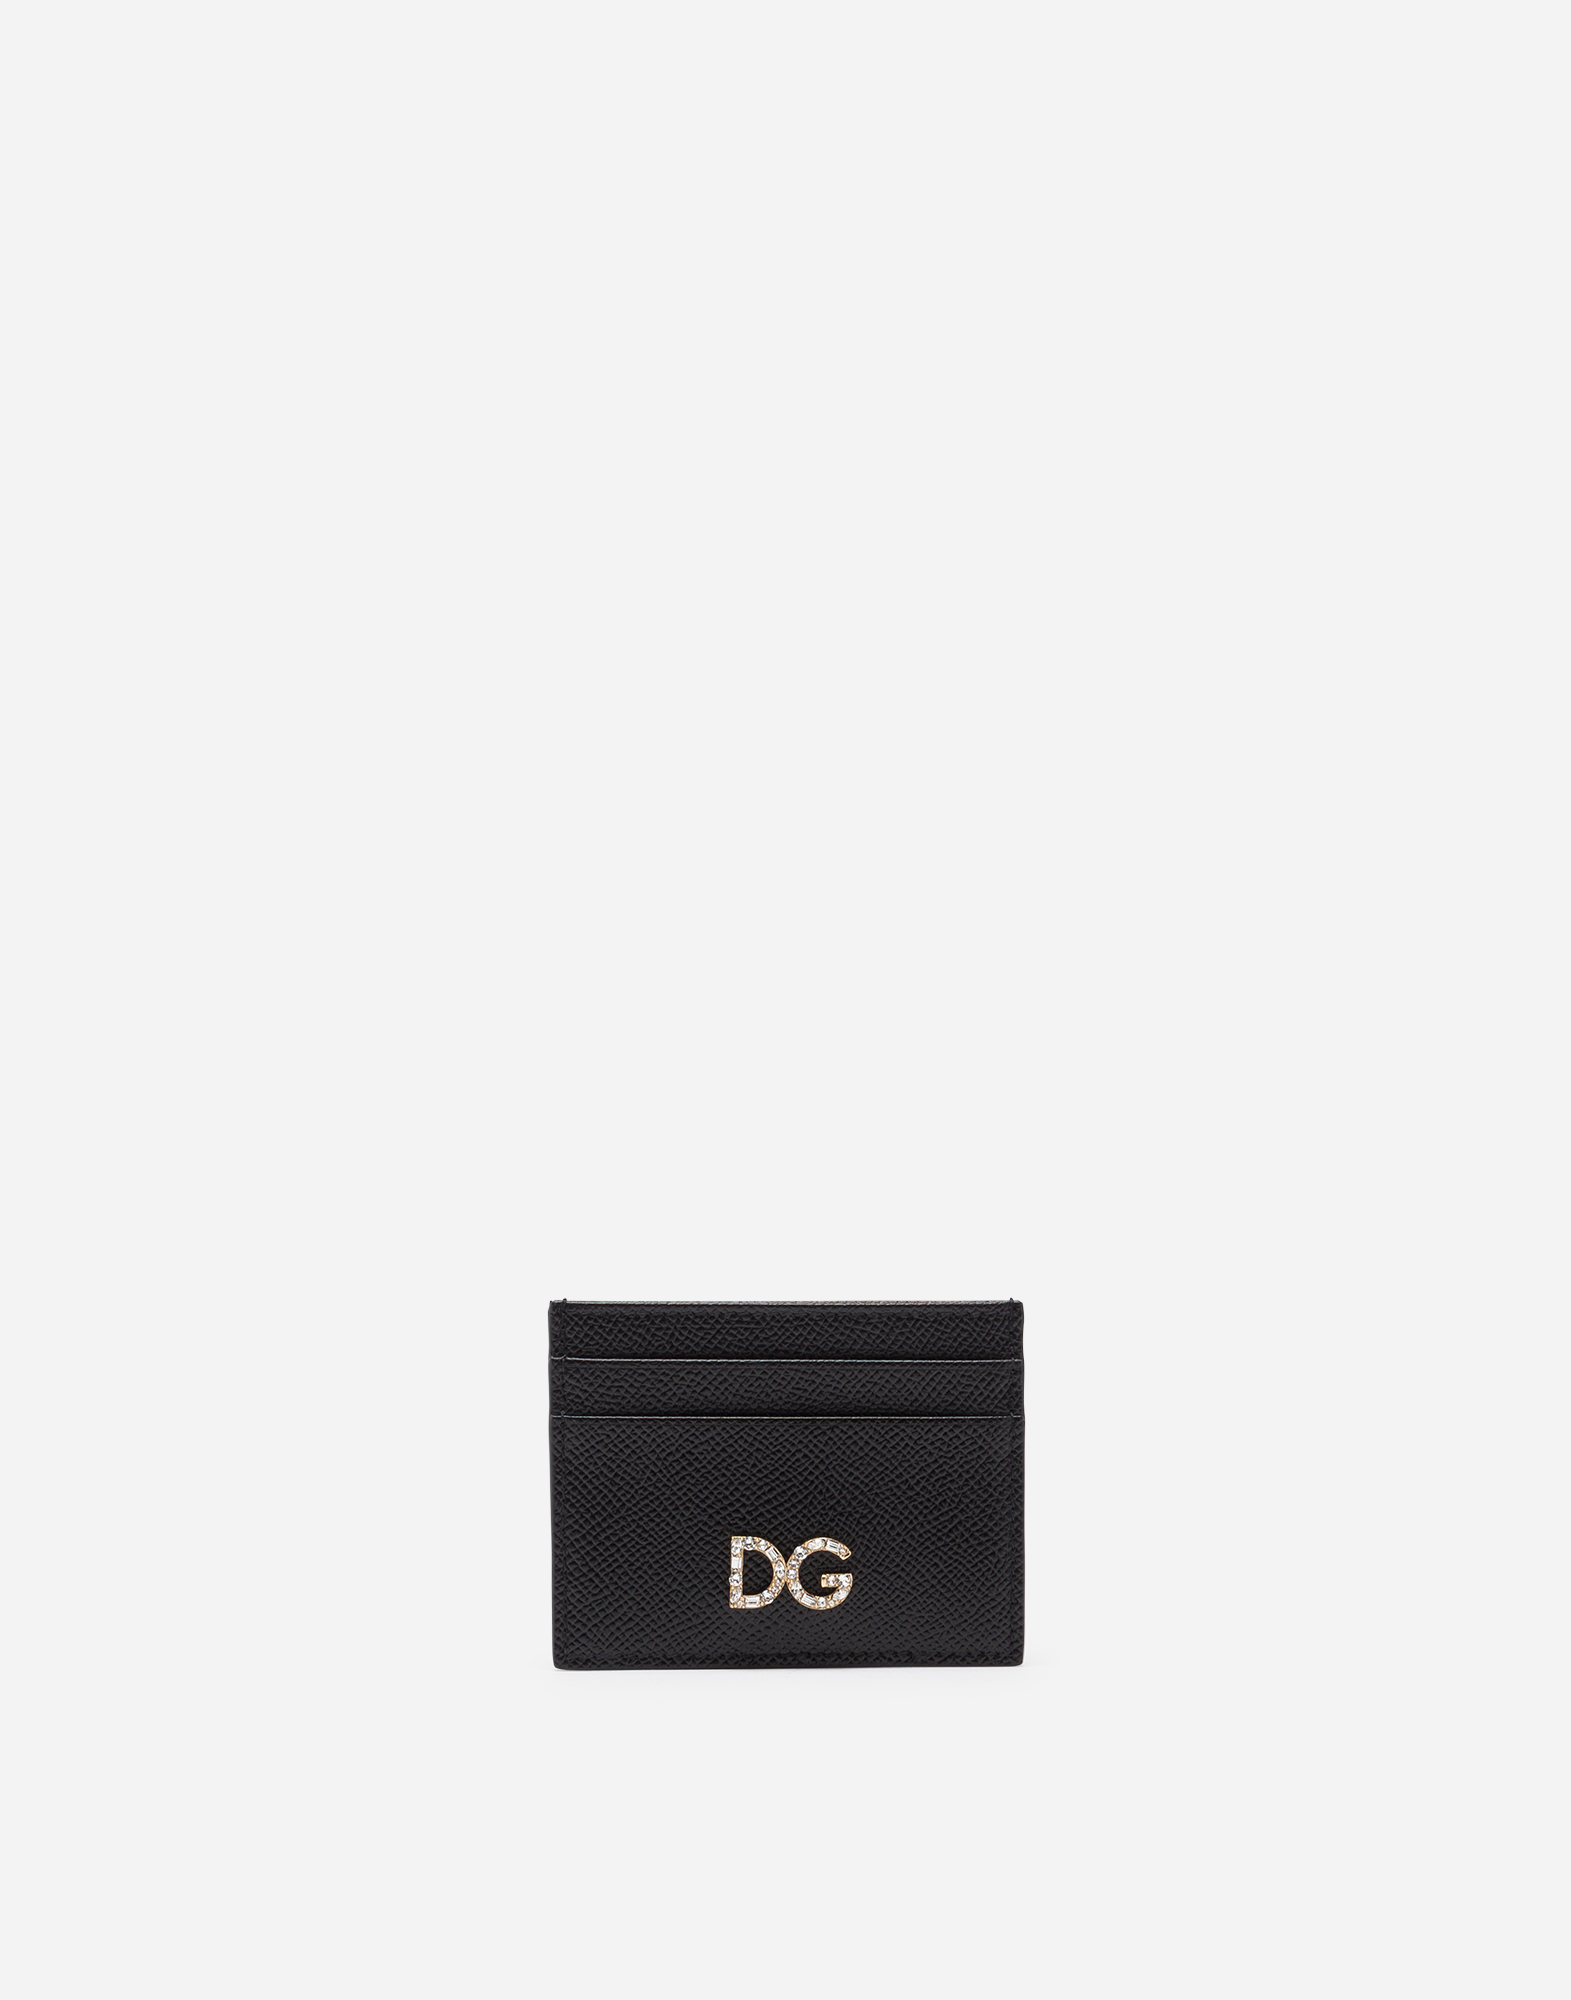 Dolce&Gabbana DAUPHINE CALFSKIN CARD HOLDER WITH DG CRYSTAL LOGO